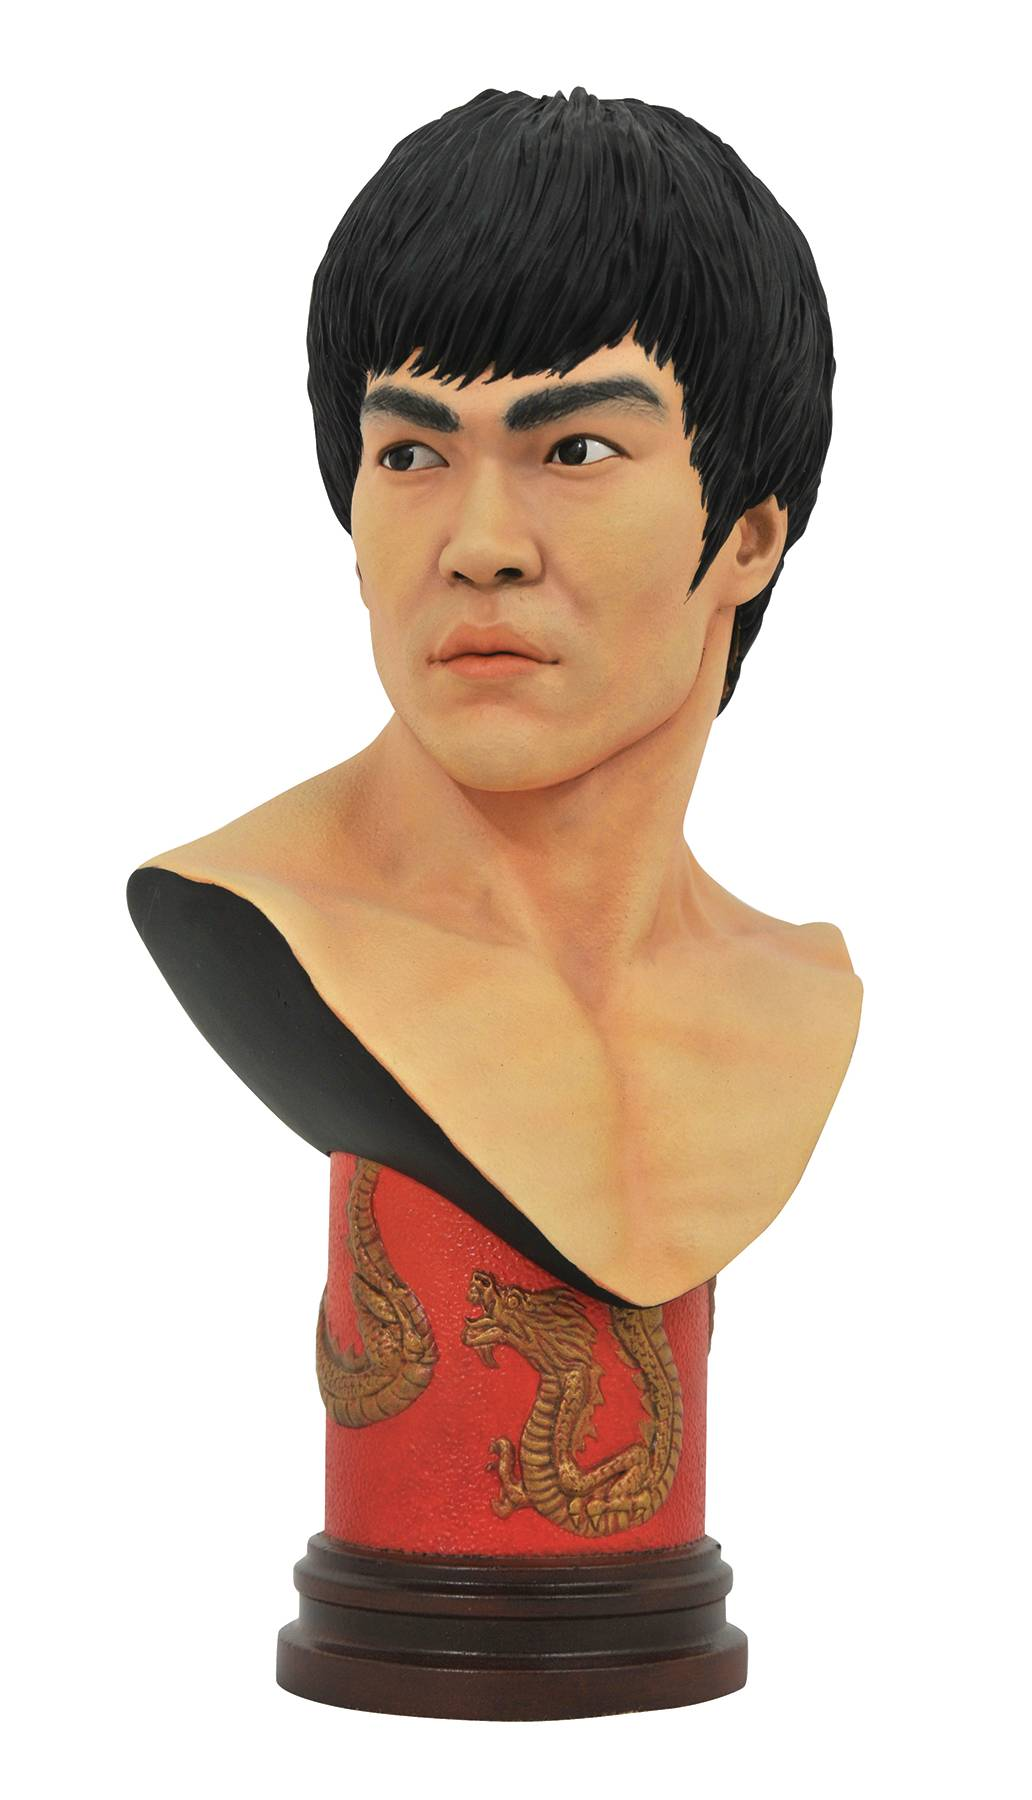 Pre-Order Diamond Legends Bruce Lee 1/2 Scale Bust